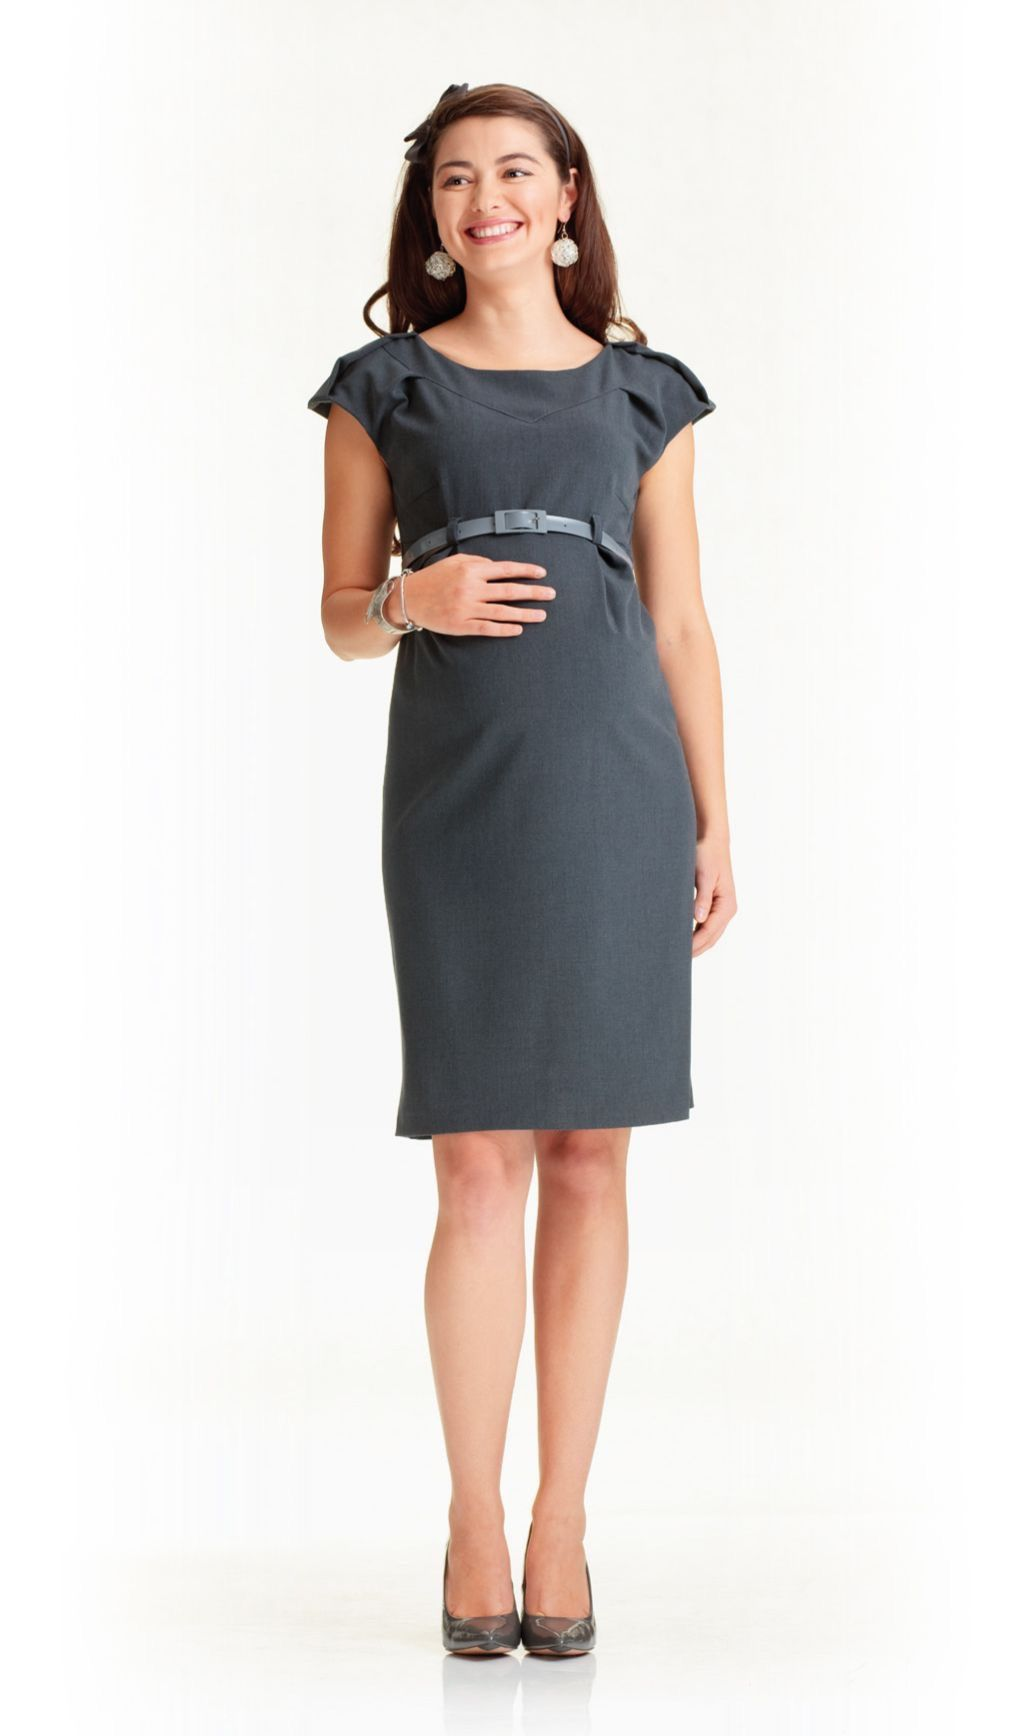 cdda669fcee Office maternity dress